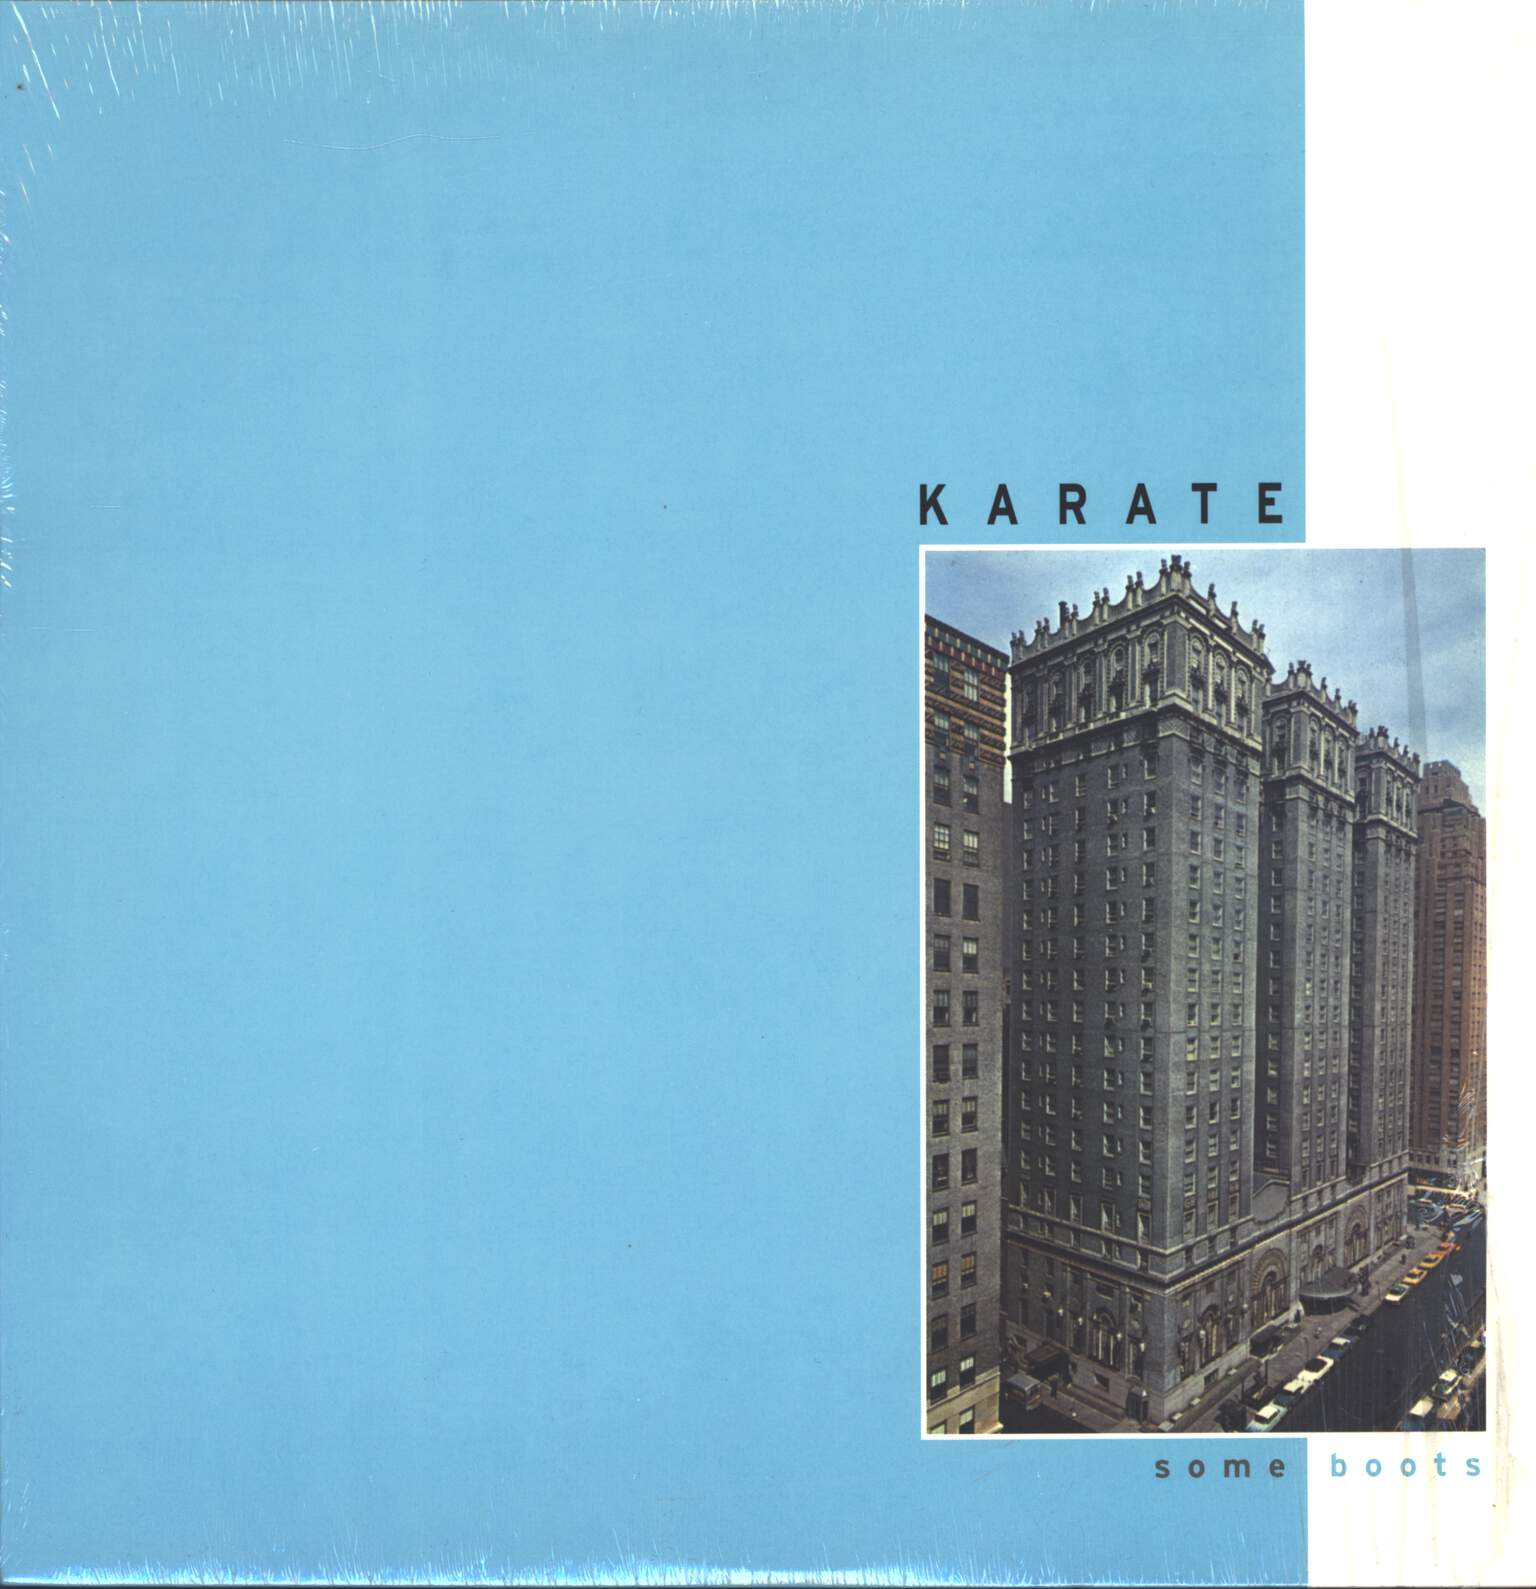 Karate: Some Boots, LP (Vinyl)